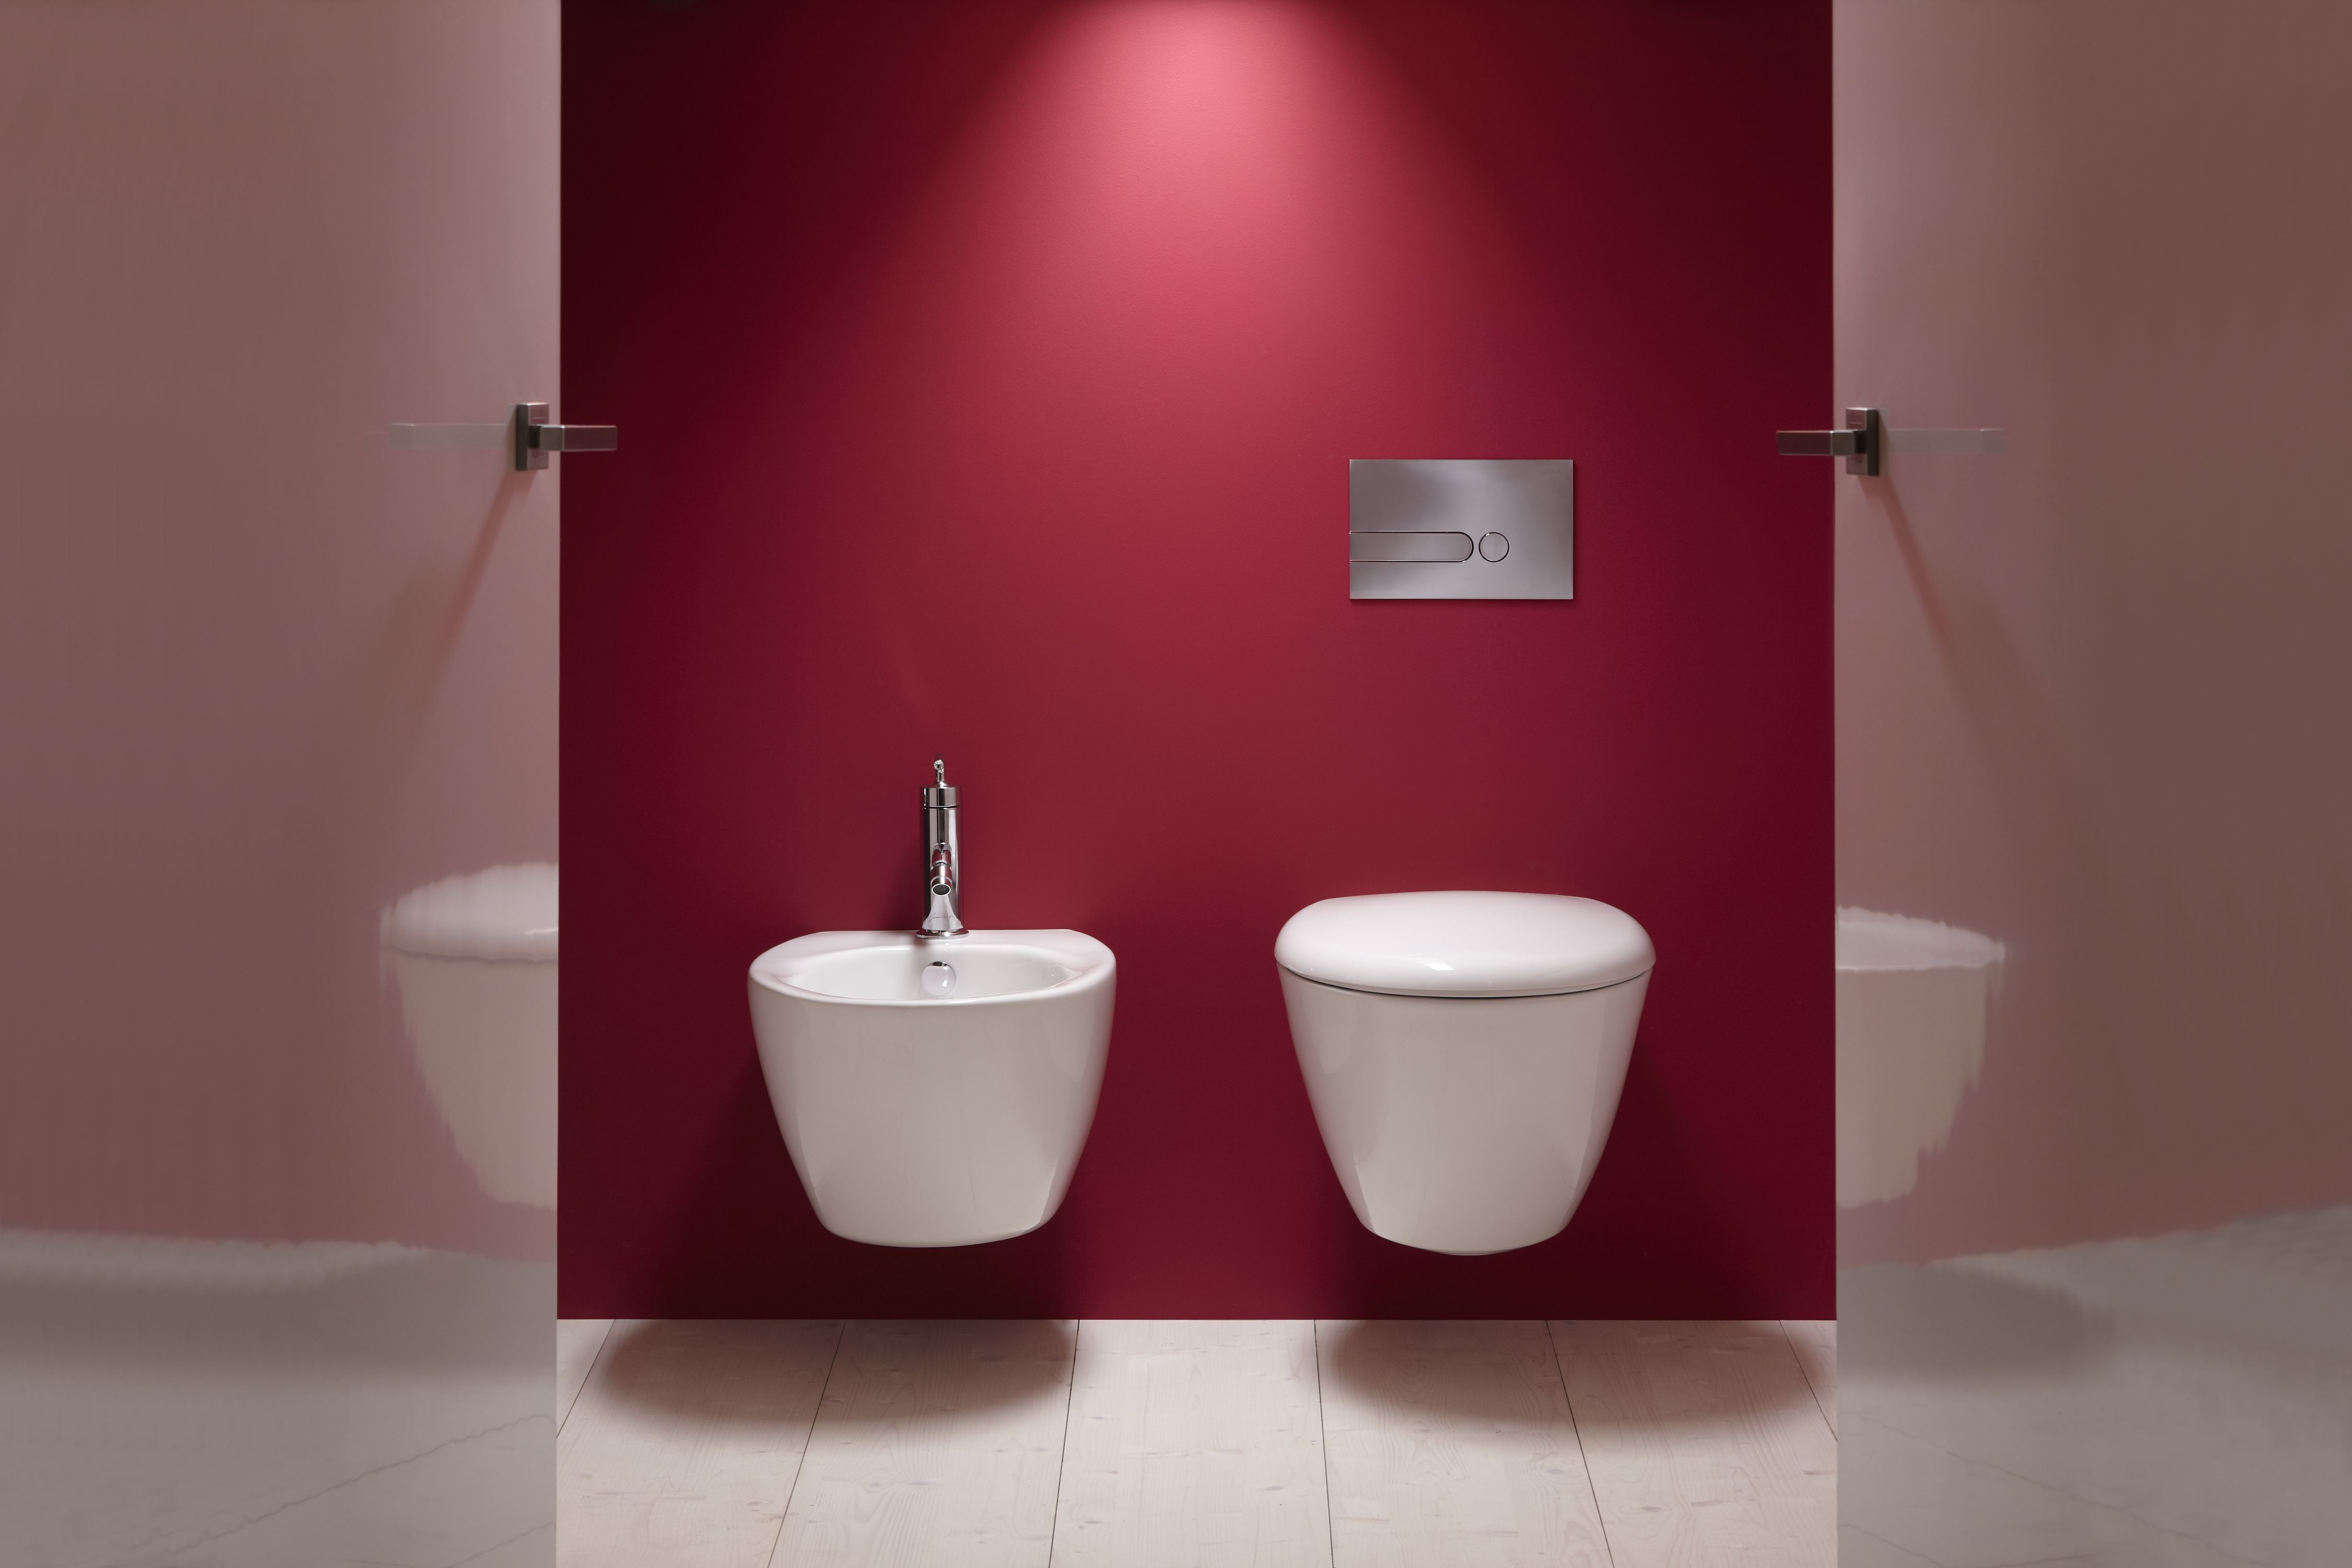 Adoptez l'espace toilettes/bidet pour un style plus chic et pratique avec la Collection Presqu'Ile de Jacob Delafon #toilettes #bidet #Jacobdelafon